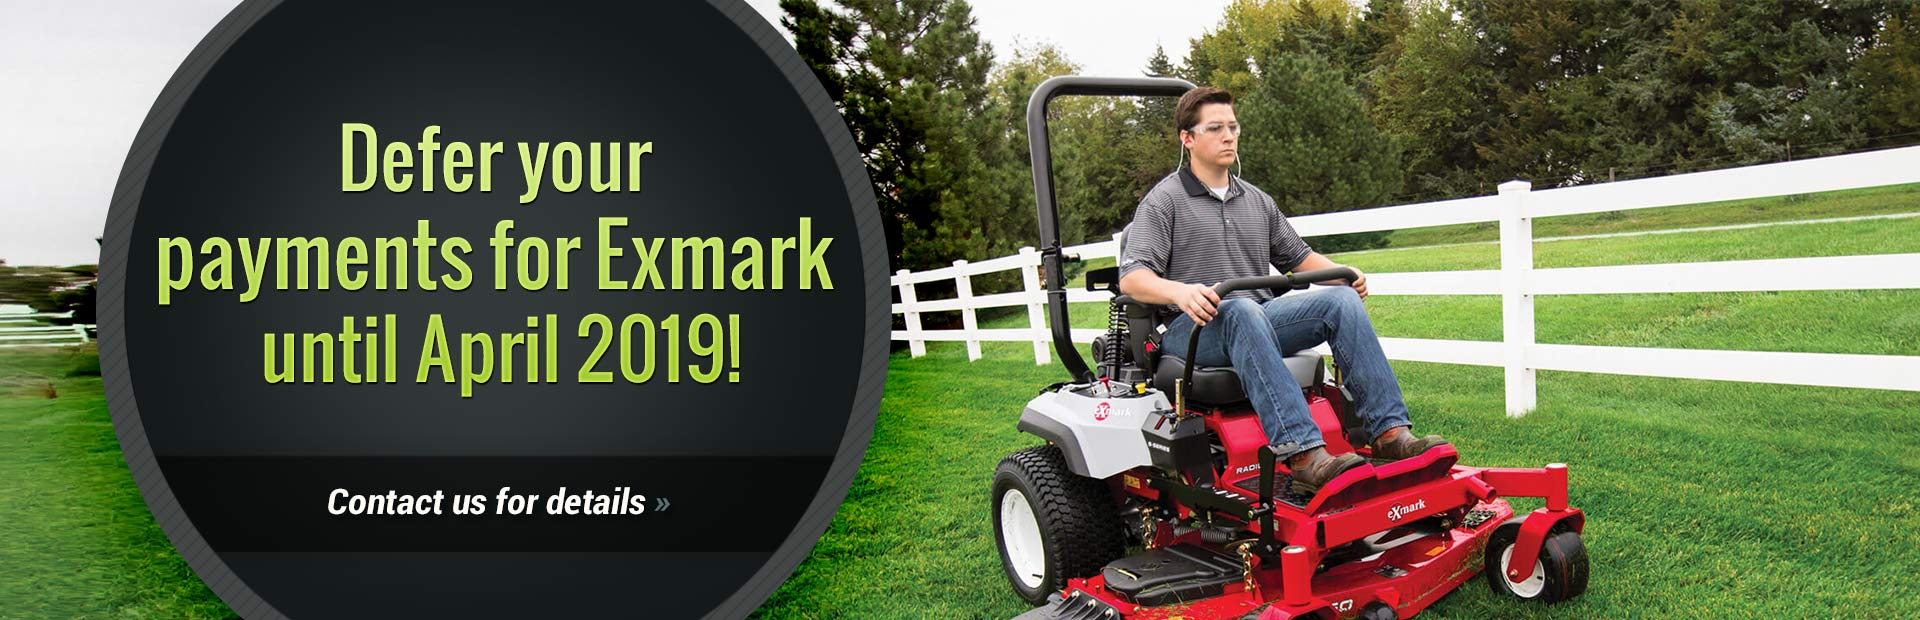 Defer your payments for Exmark until April 2019! Contact us for details.